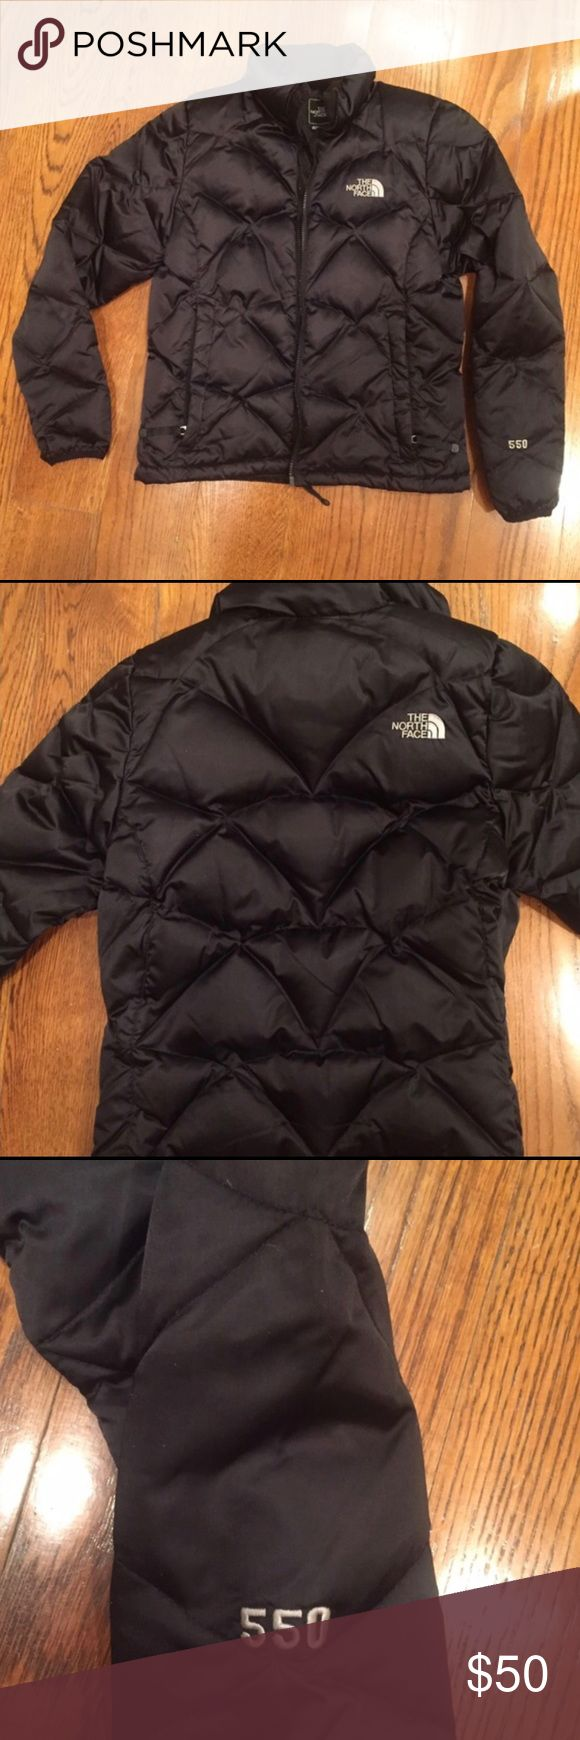 North Face 550 Women's puffer coat Great condition, slightly shiny black, full zip, bottom hits at waist, 550 weight. Great coat to stay warm this winter! North Face Jackets & Coats Puffers